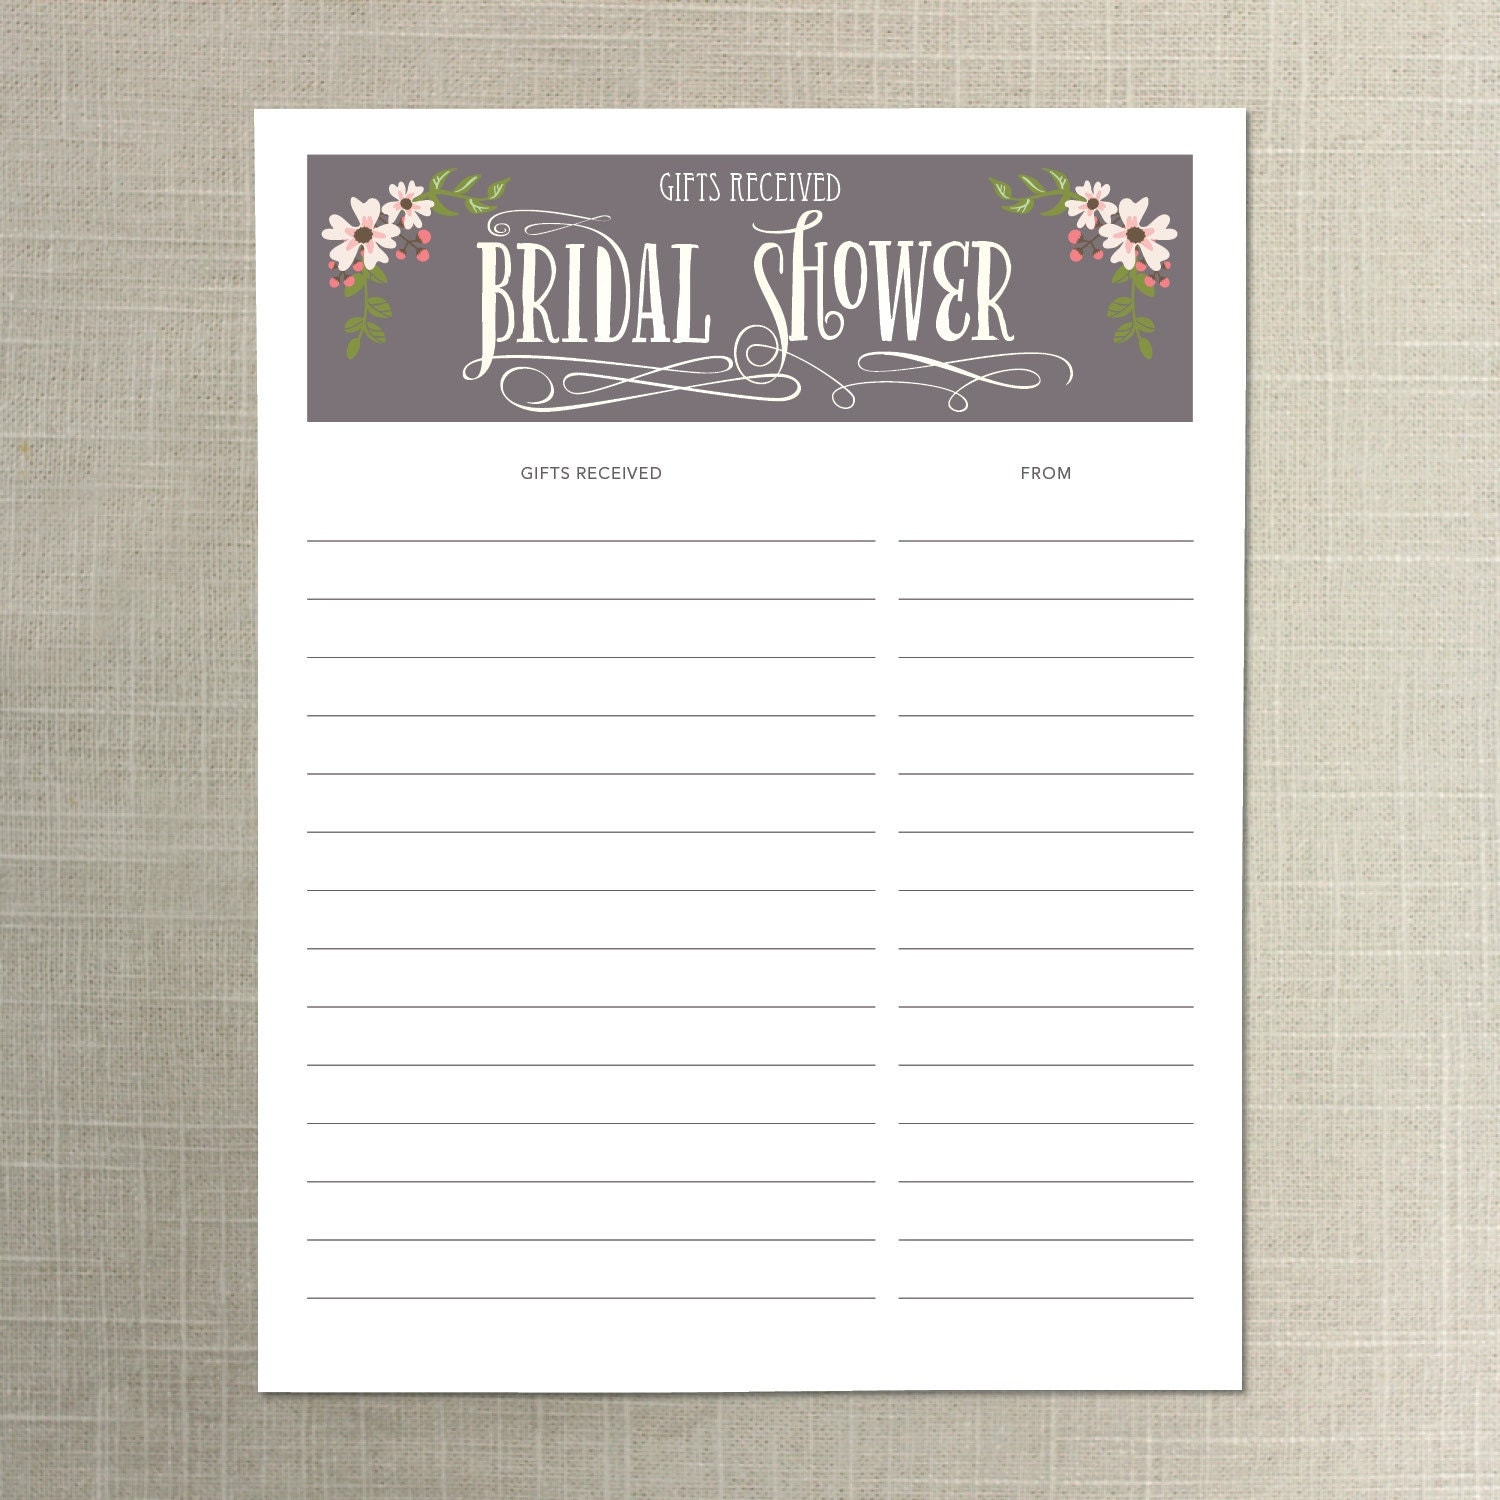 Instant download bridal shower gift list gifts received for Wedding shower gift list template